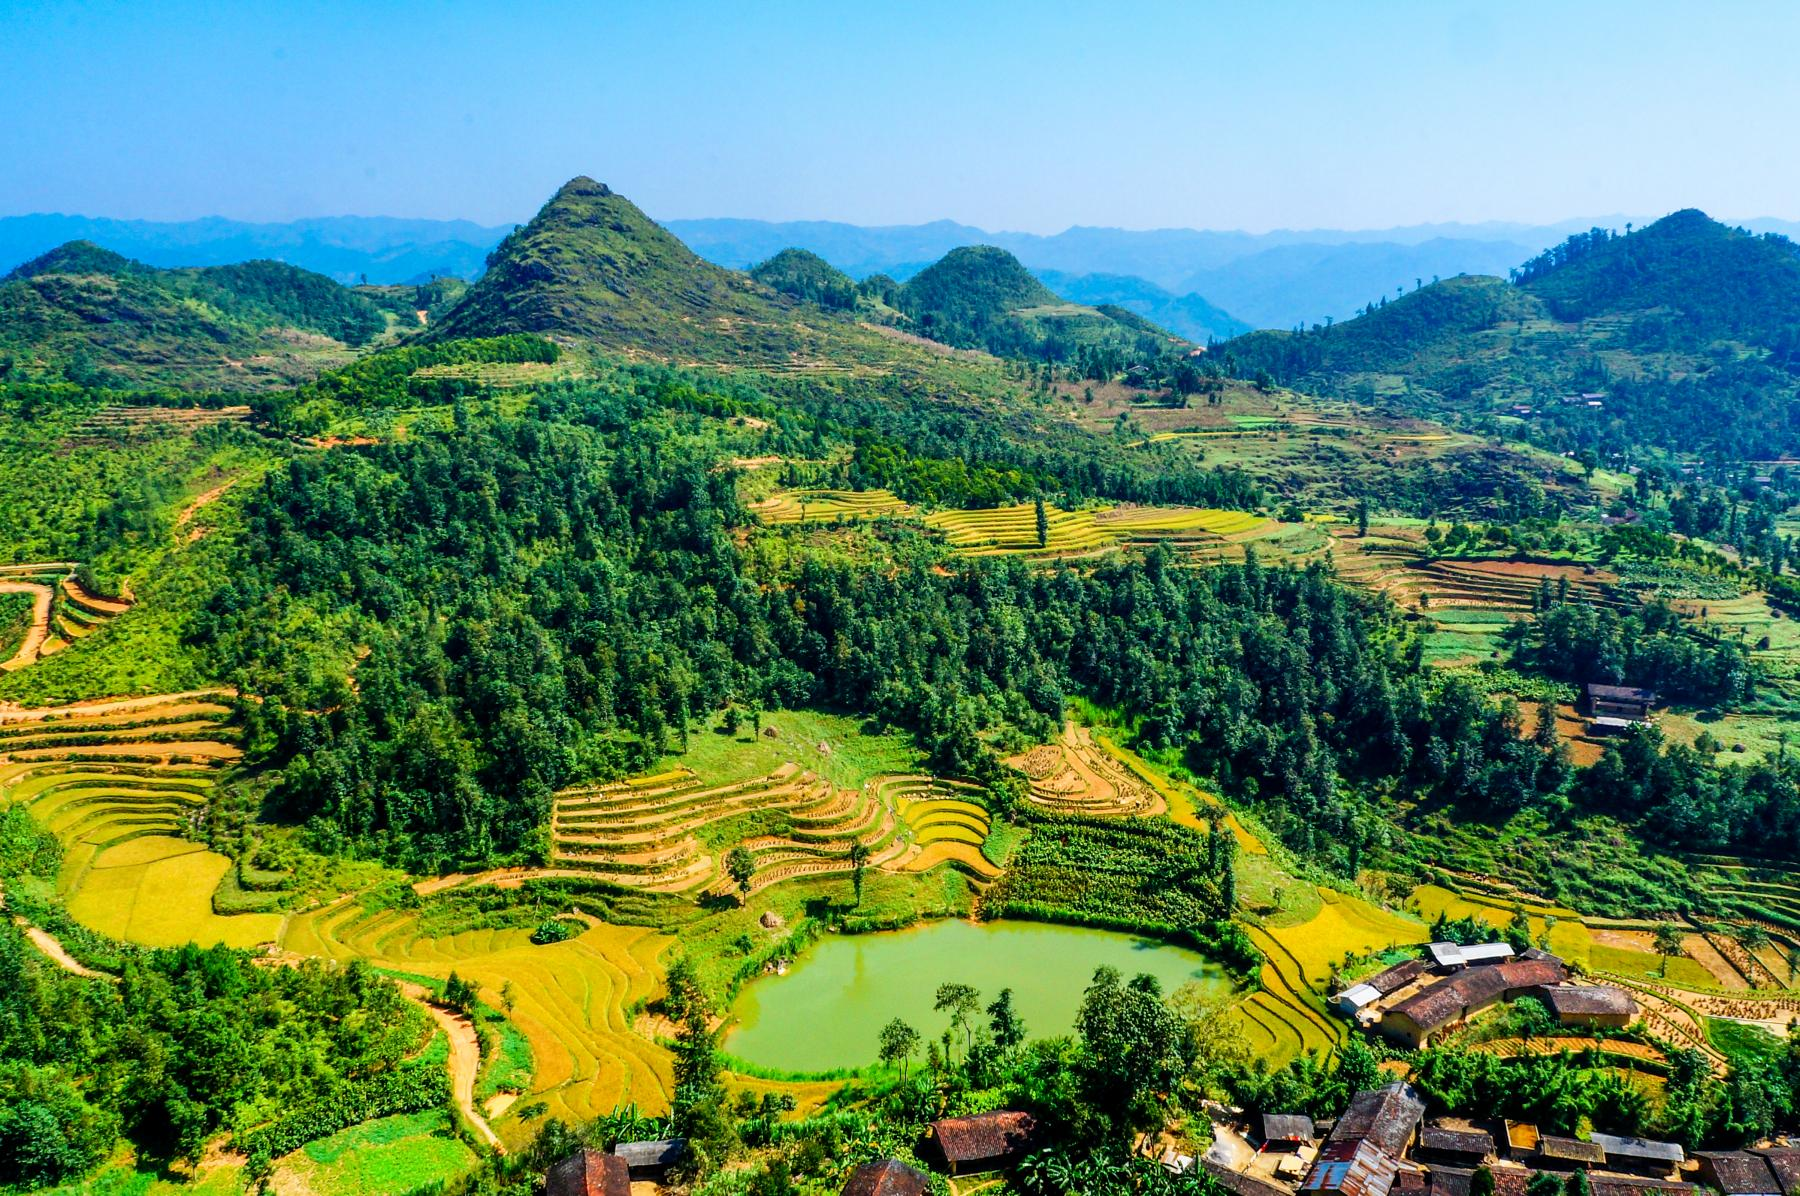 A Road Trip to the Picturesque Heaven's Gate - Ha Giang starting at Ha Giang, Vietnam